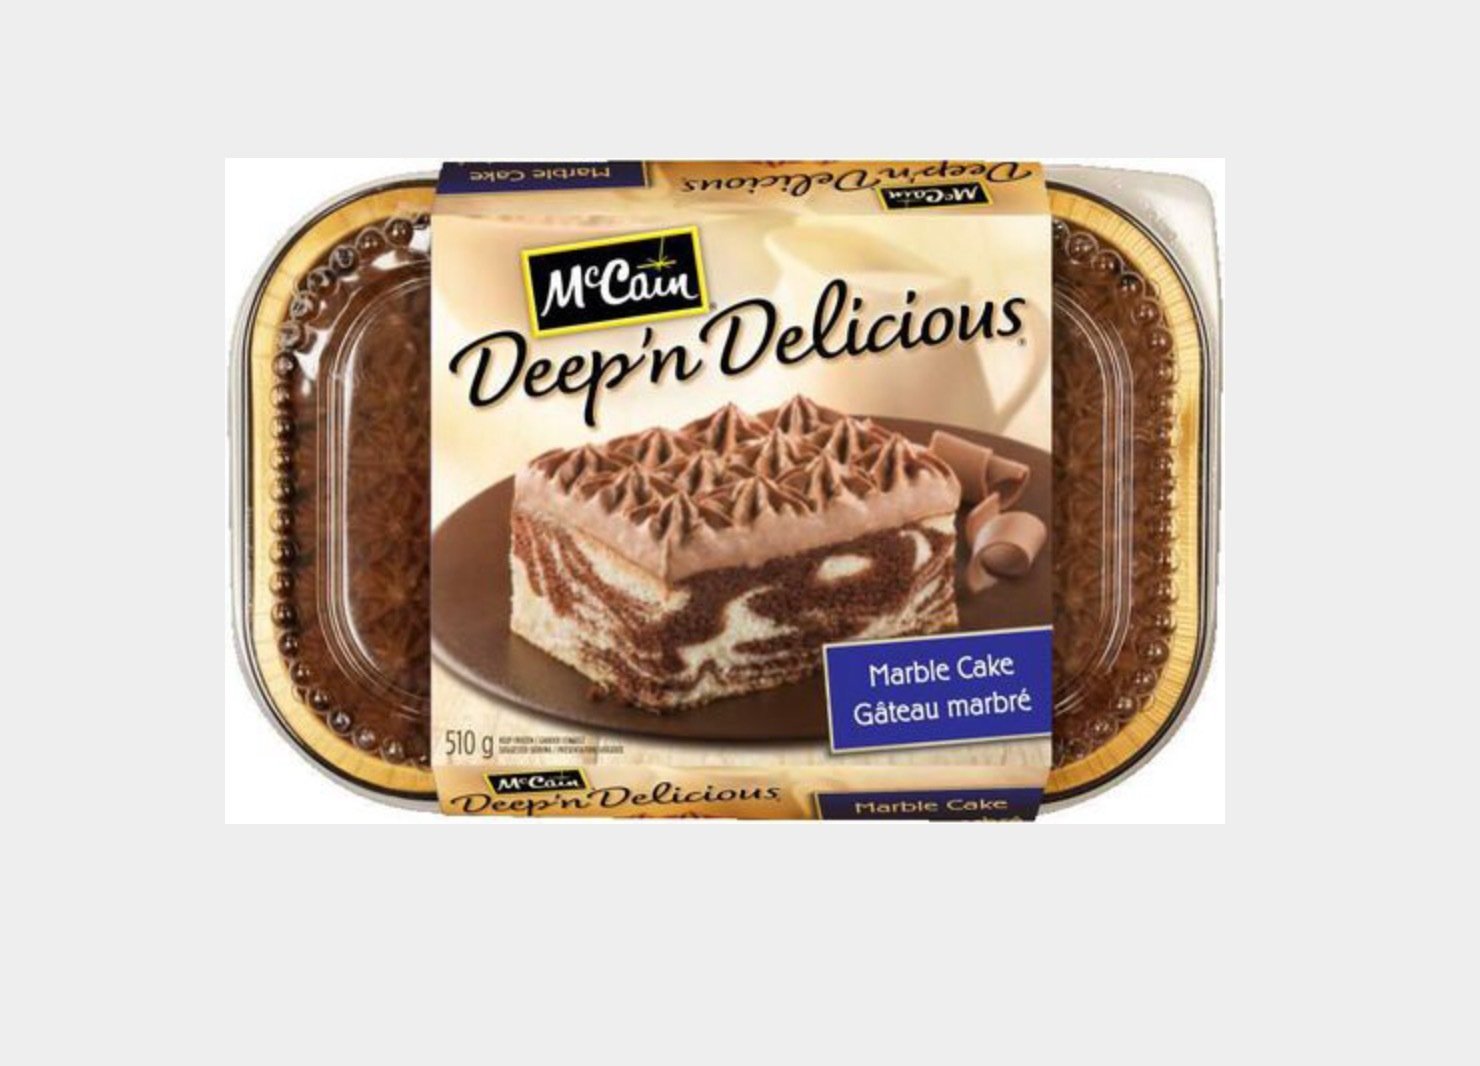 Mccain Deep N Delicious Marble Cake Image Gallery